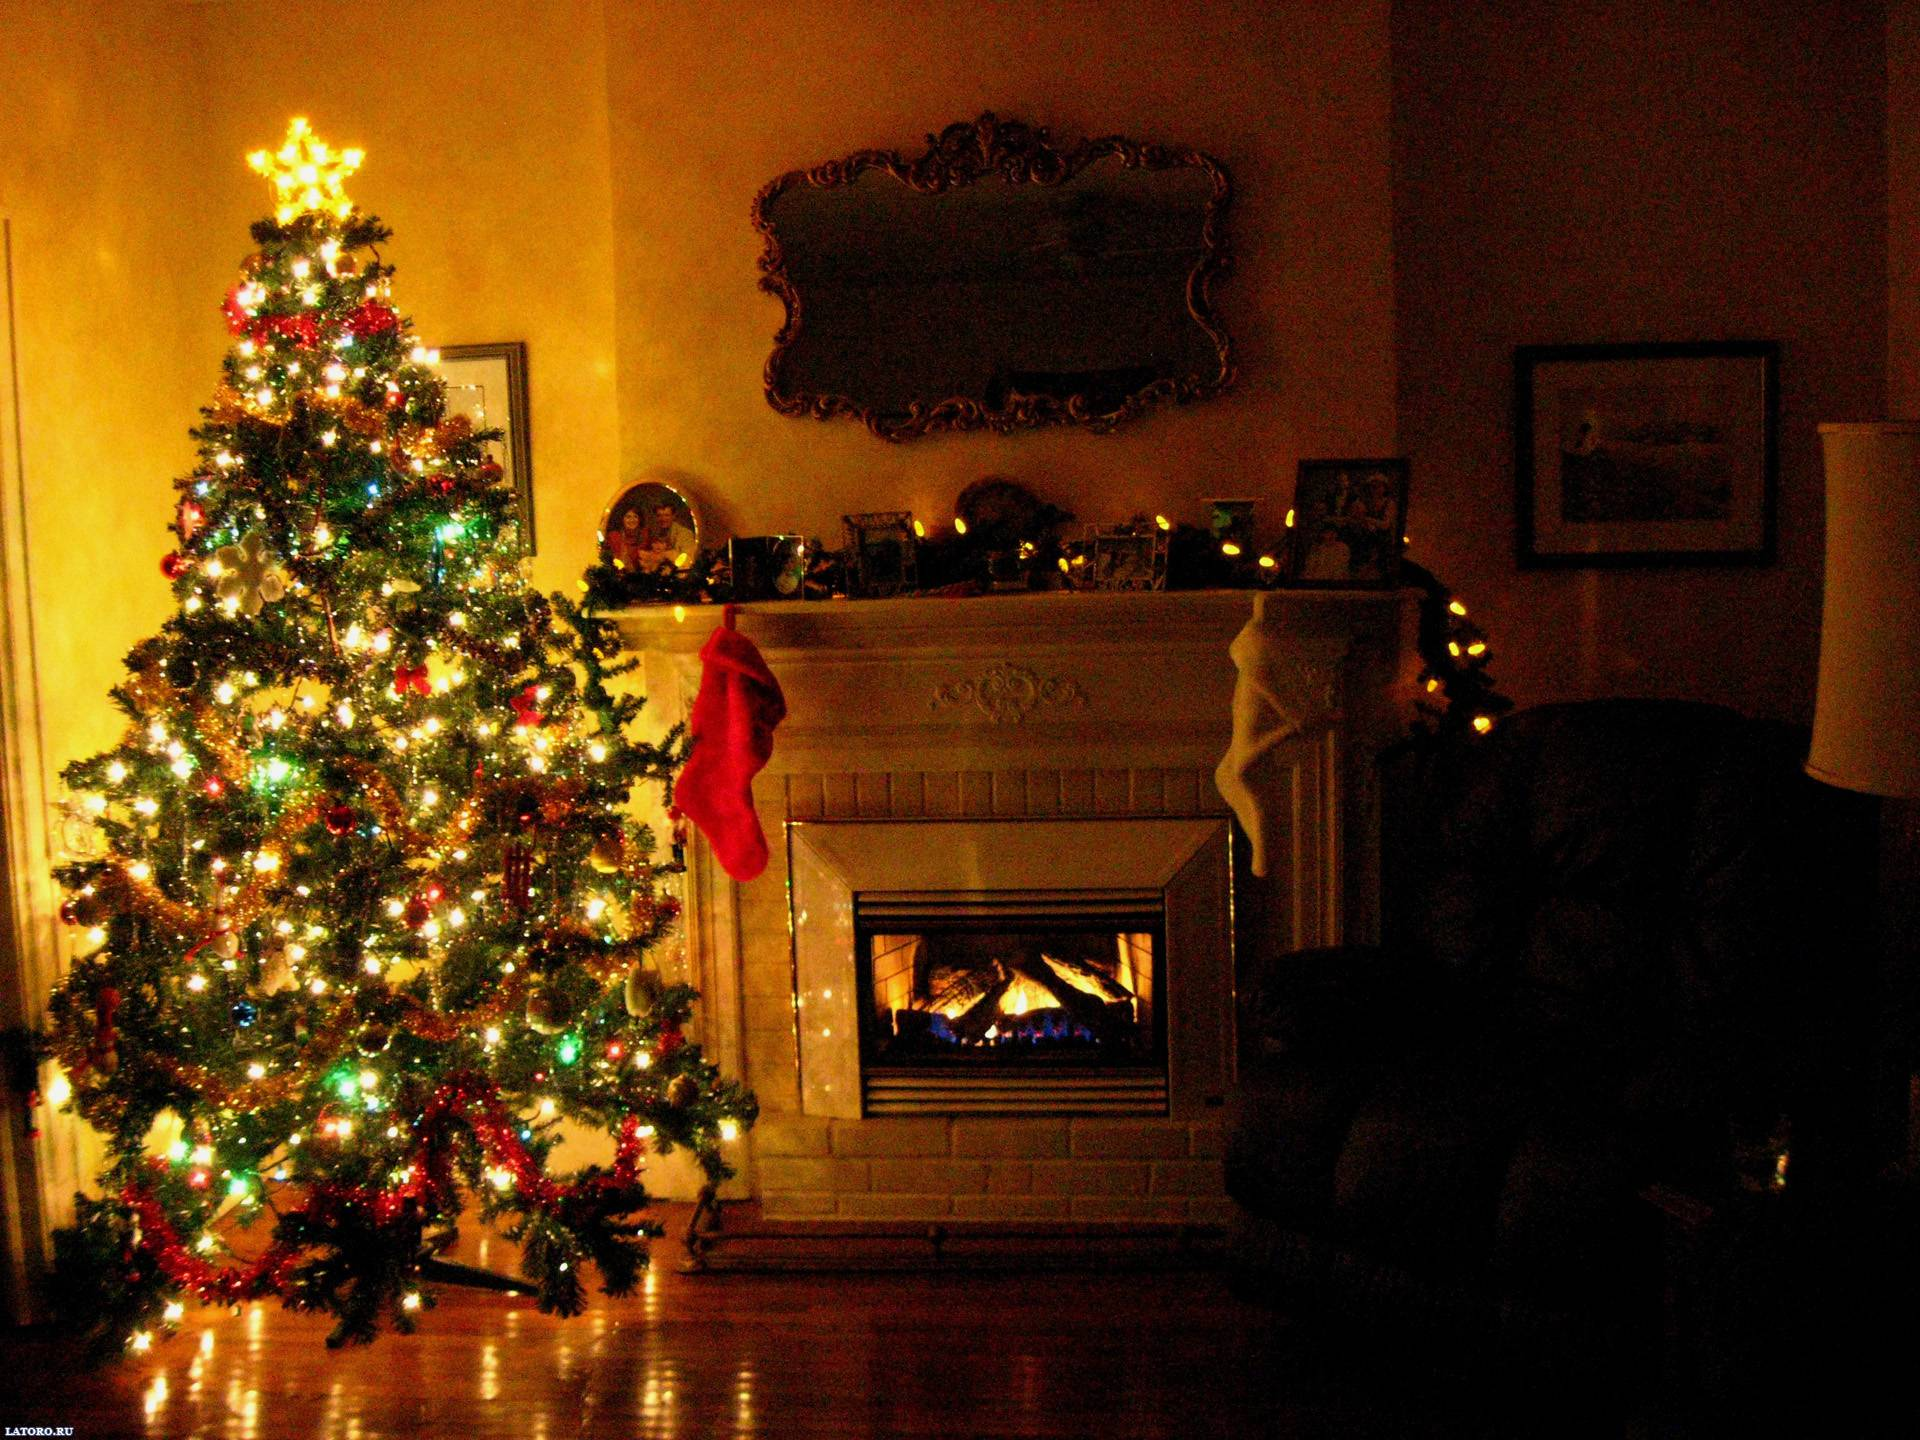 Christmas Desktop Backgrounds - Christmas Trees In Homes , HD Wallpaper & Backgrounds